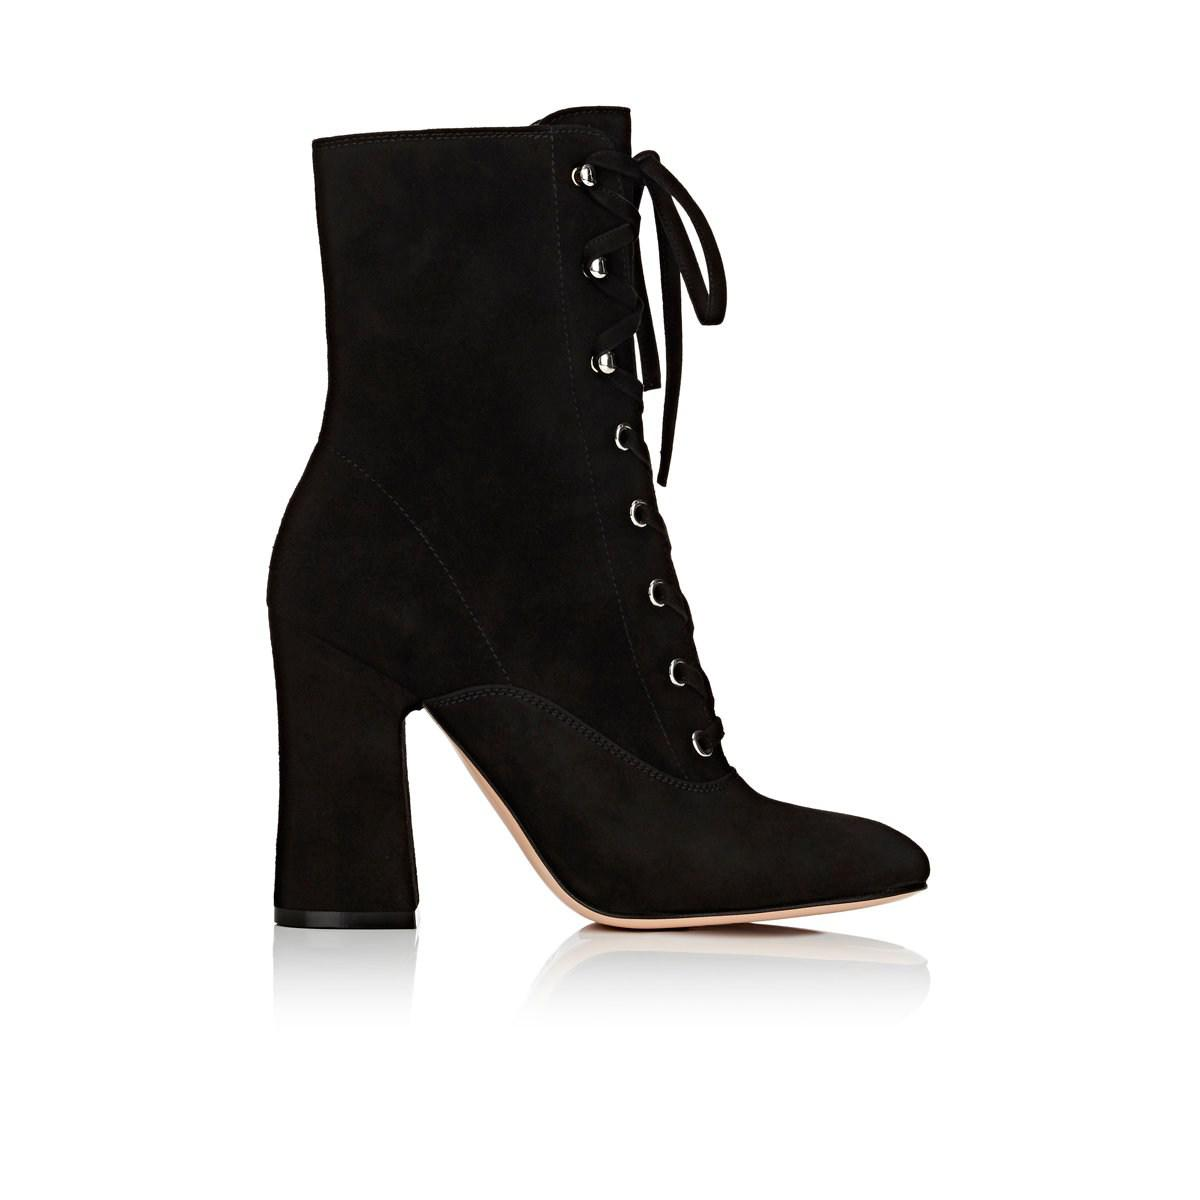 02ec40b4b870 Gianvito Rossi Mackay Suede Ankle Boots in Black - Lyst